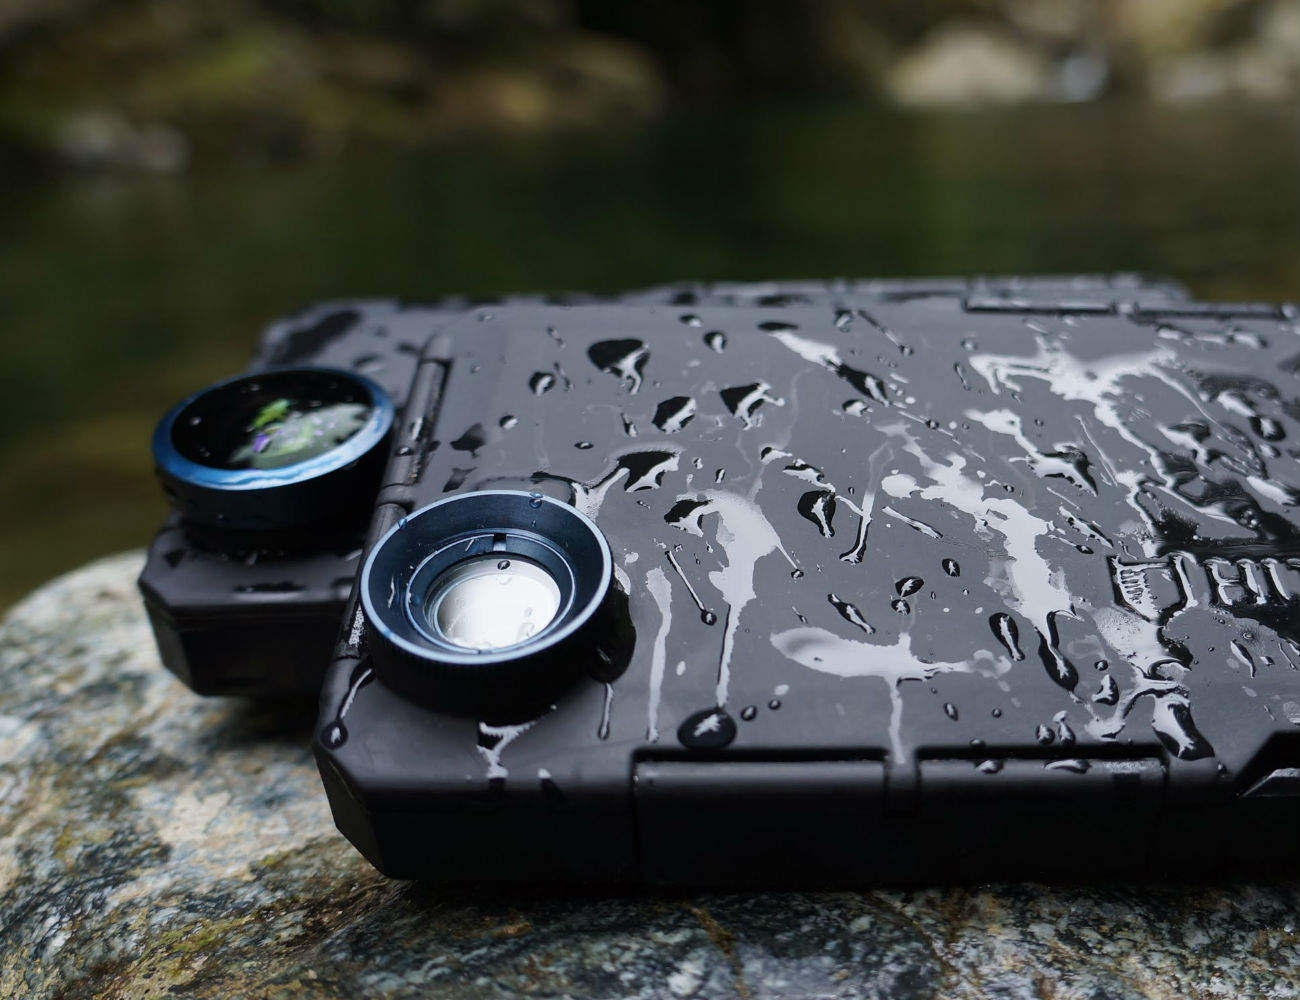 HITCASE PRO Waterproof Case Bundle for iPhone 6/S